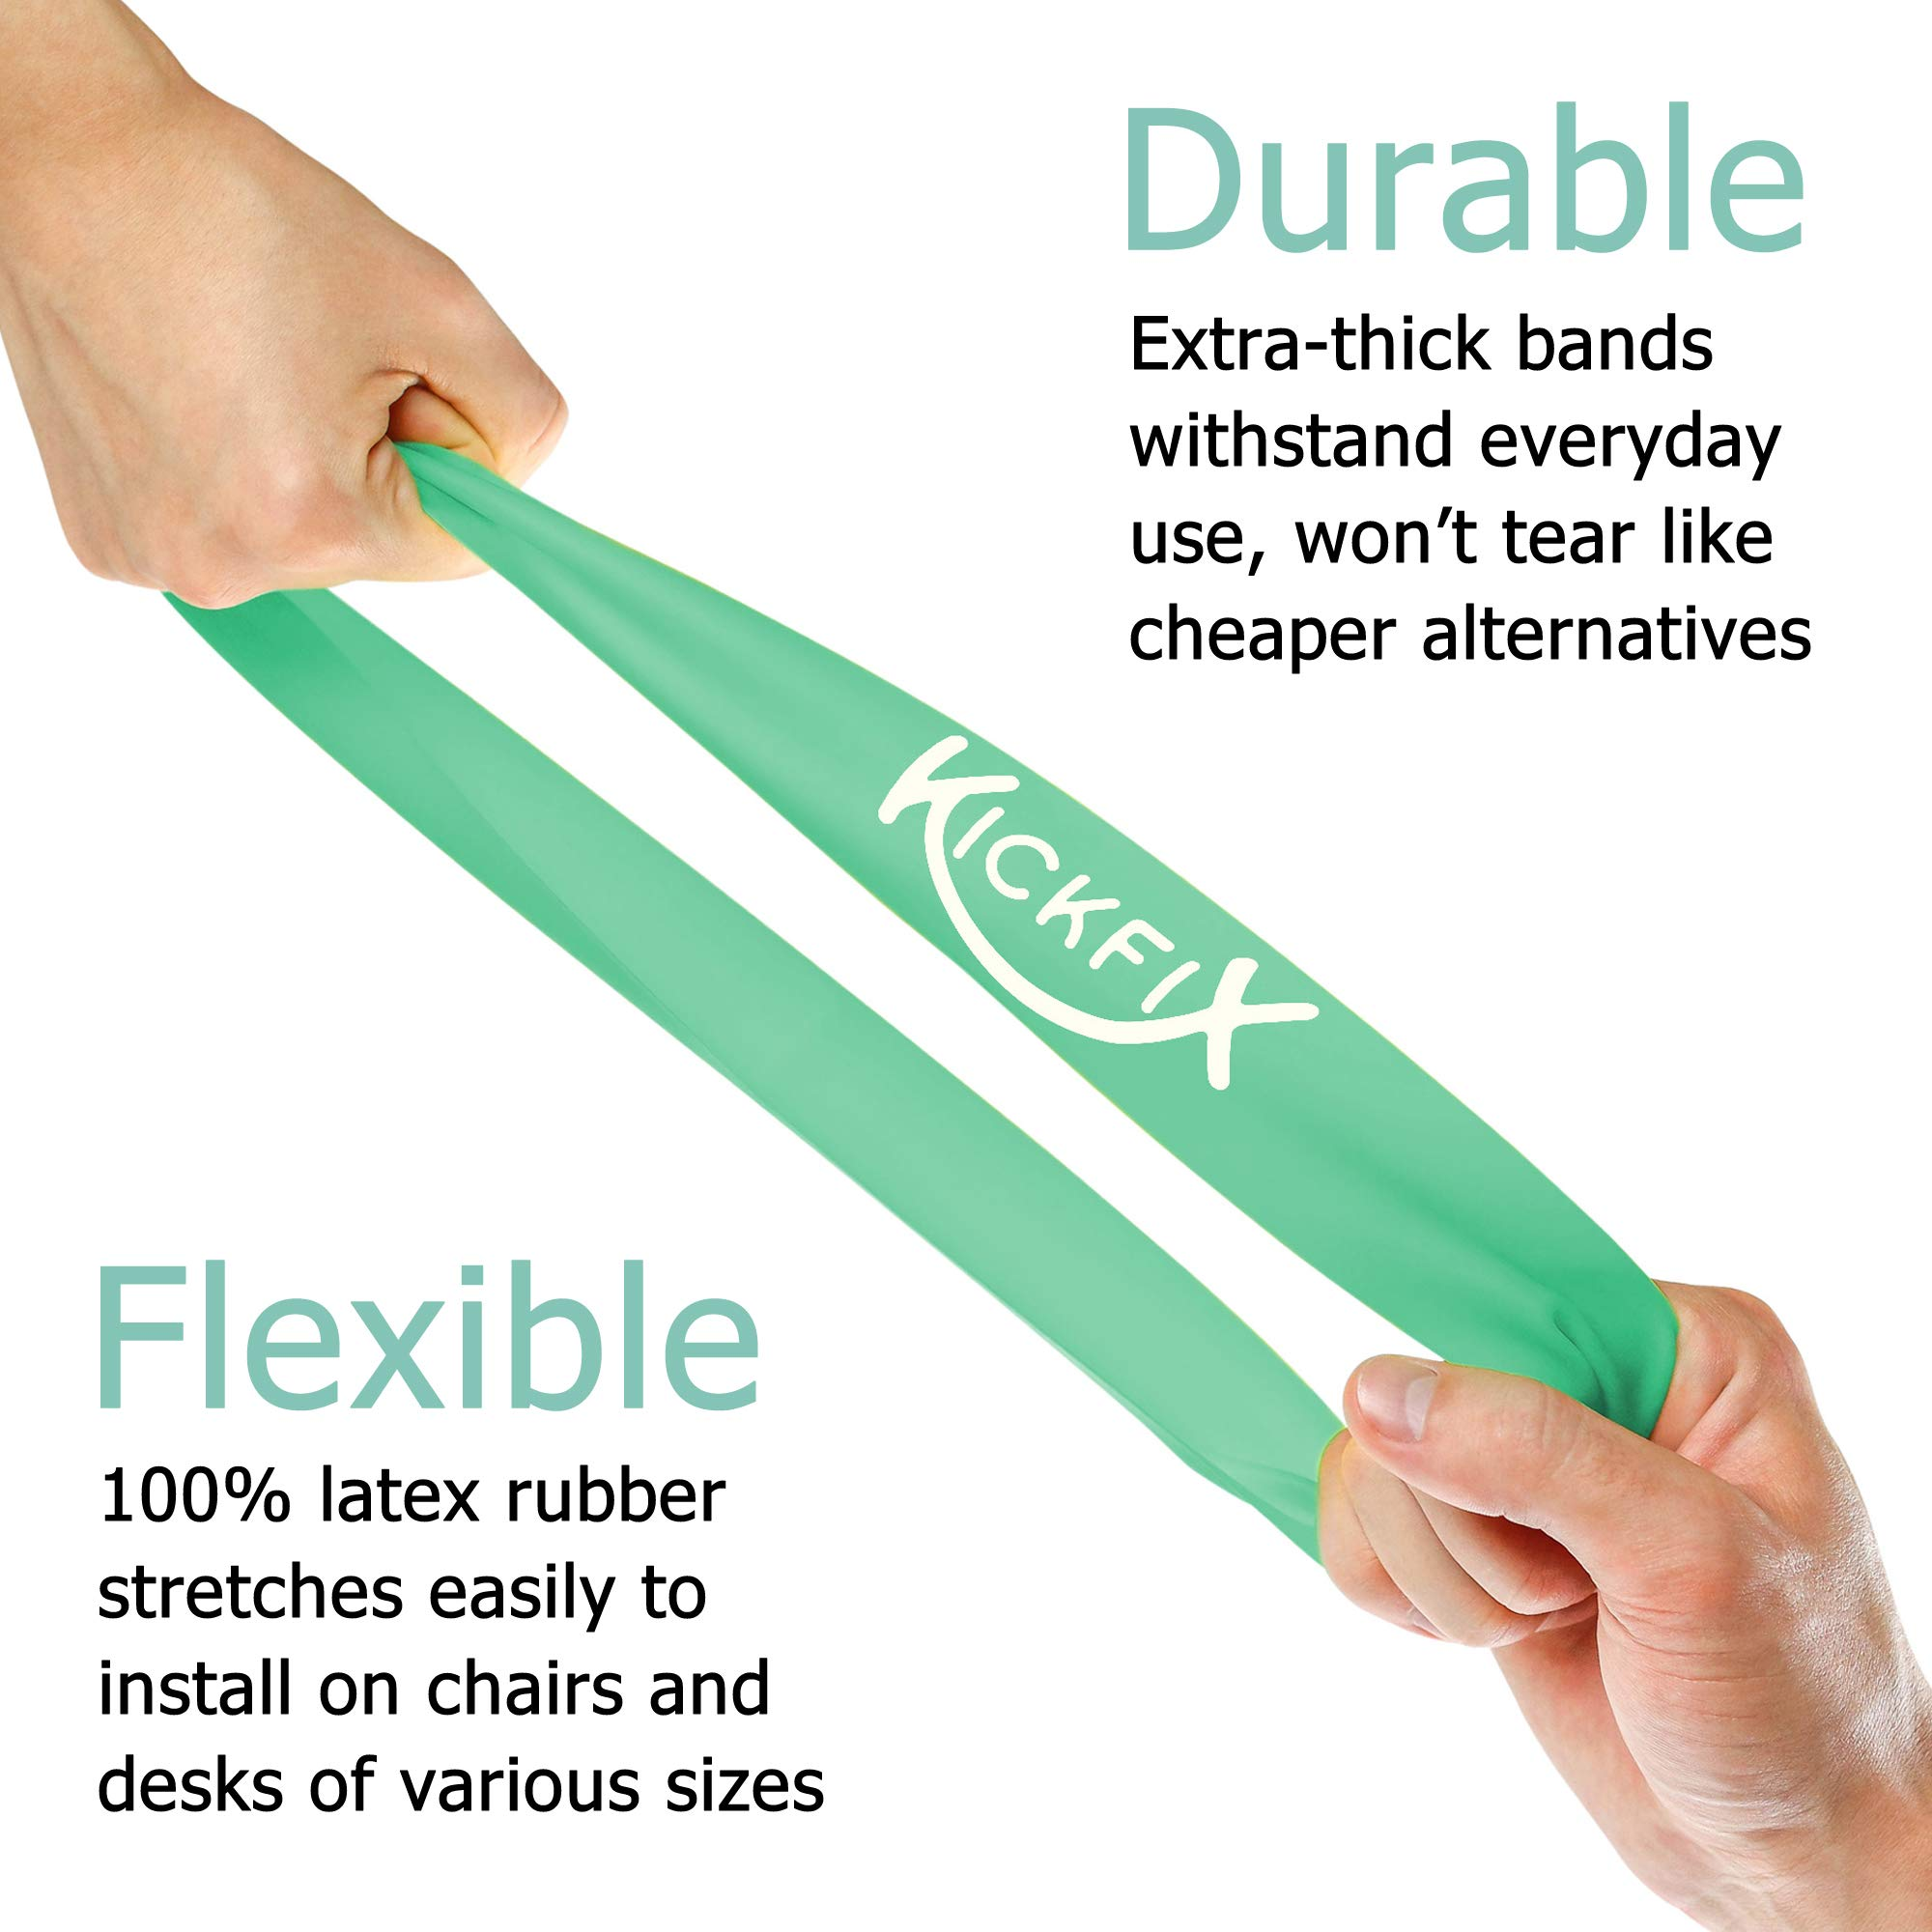 Fidget Chair Bands for Kids - Flexible Seating Classroom Furniture Option for Kids with Fidgety Feet - Bouncy Foot Bands for the Desk or Chair for Students with ADHD, Autism, or Sensory Needs by Kickfix (Image #4)